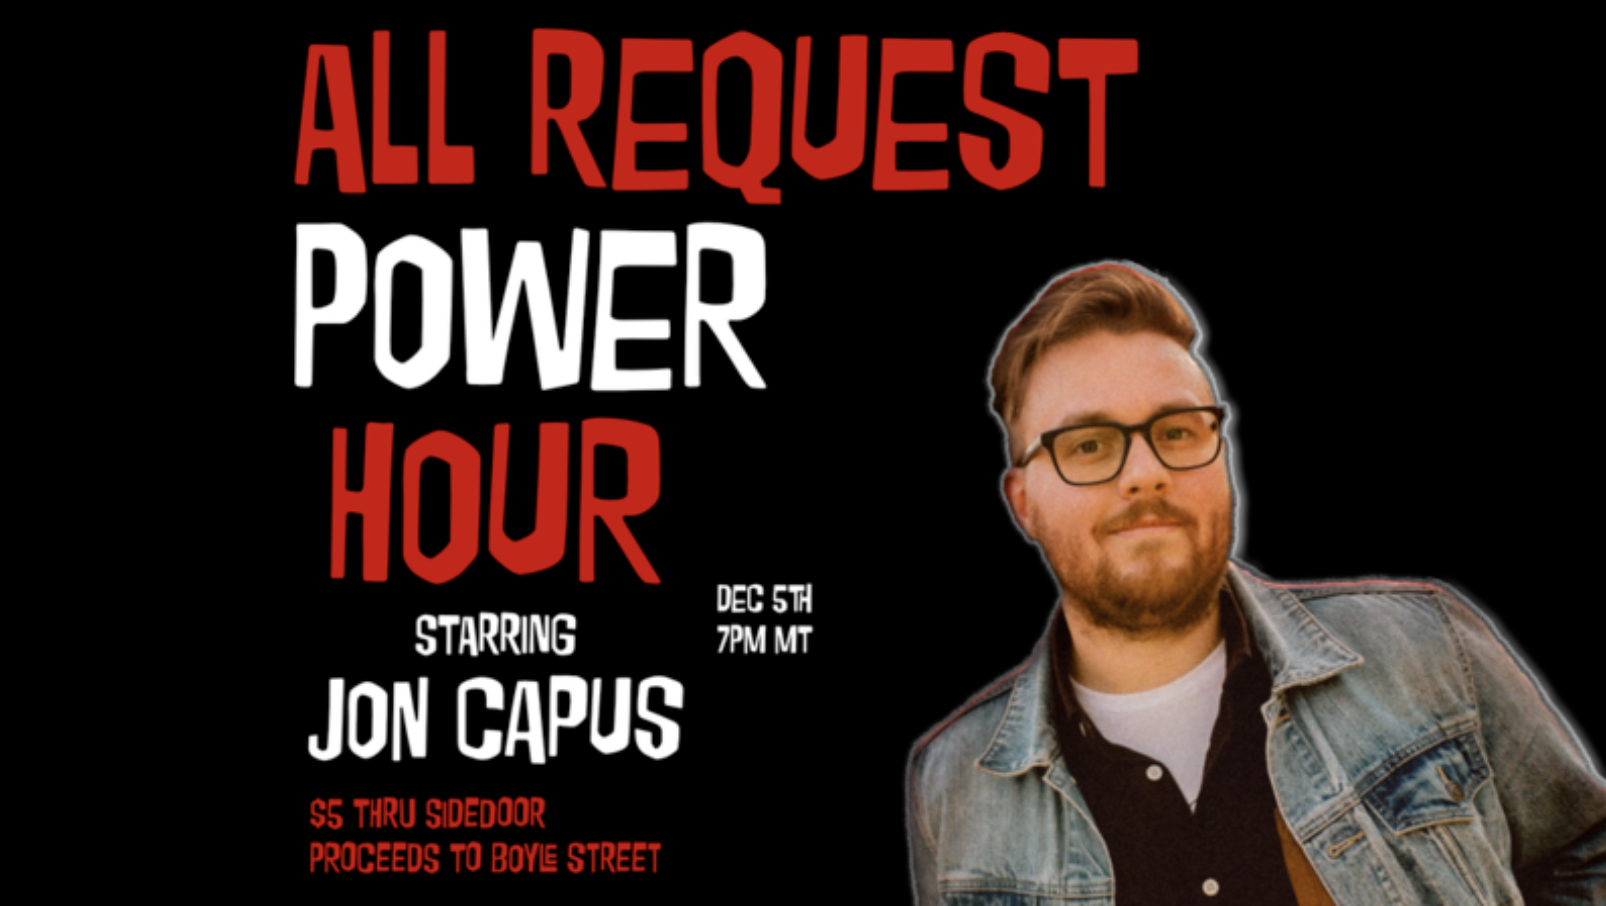 All Request Power Hour.png